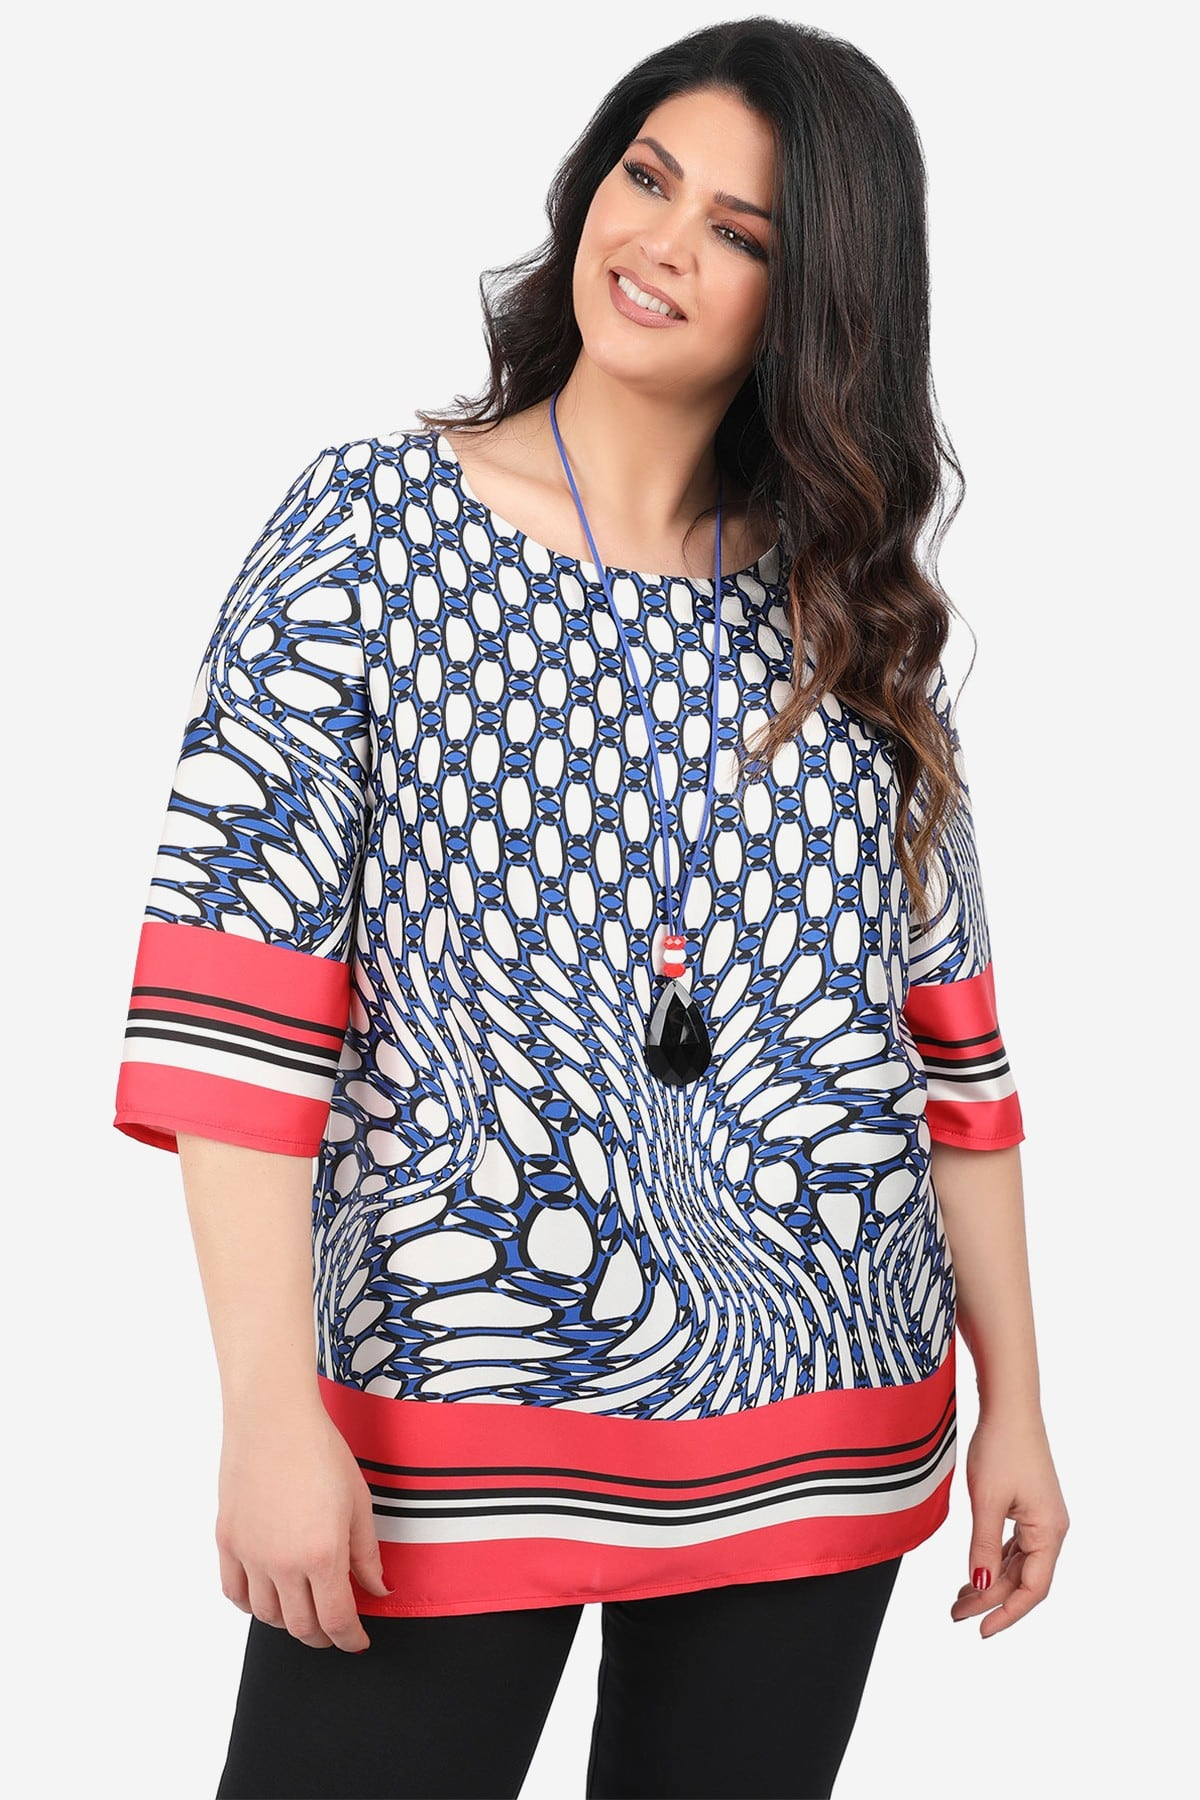 Tunic in a mix of prints